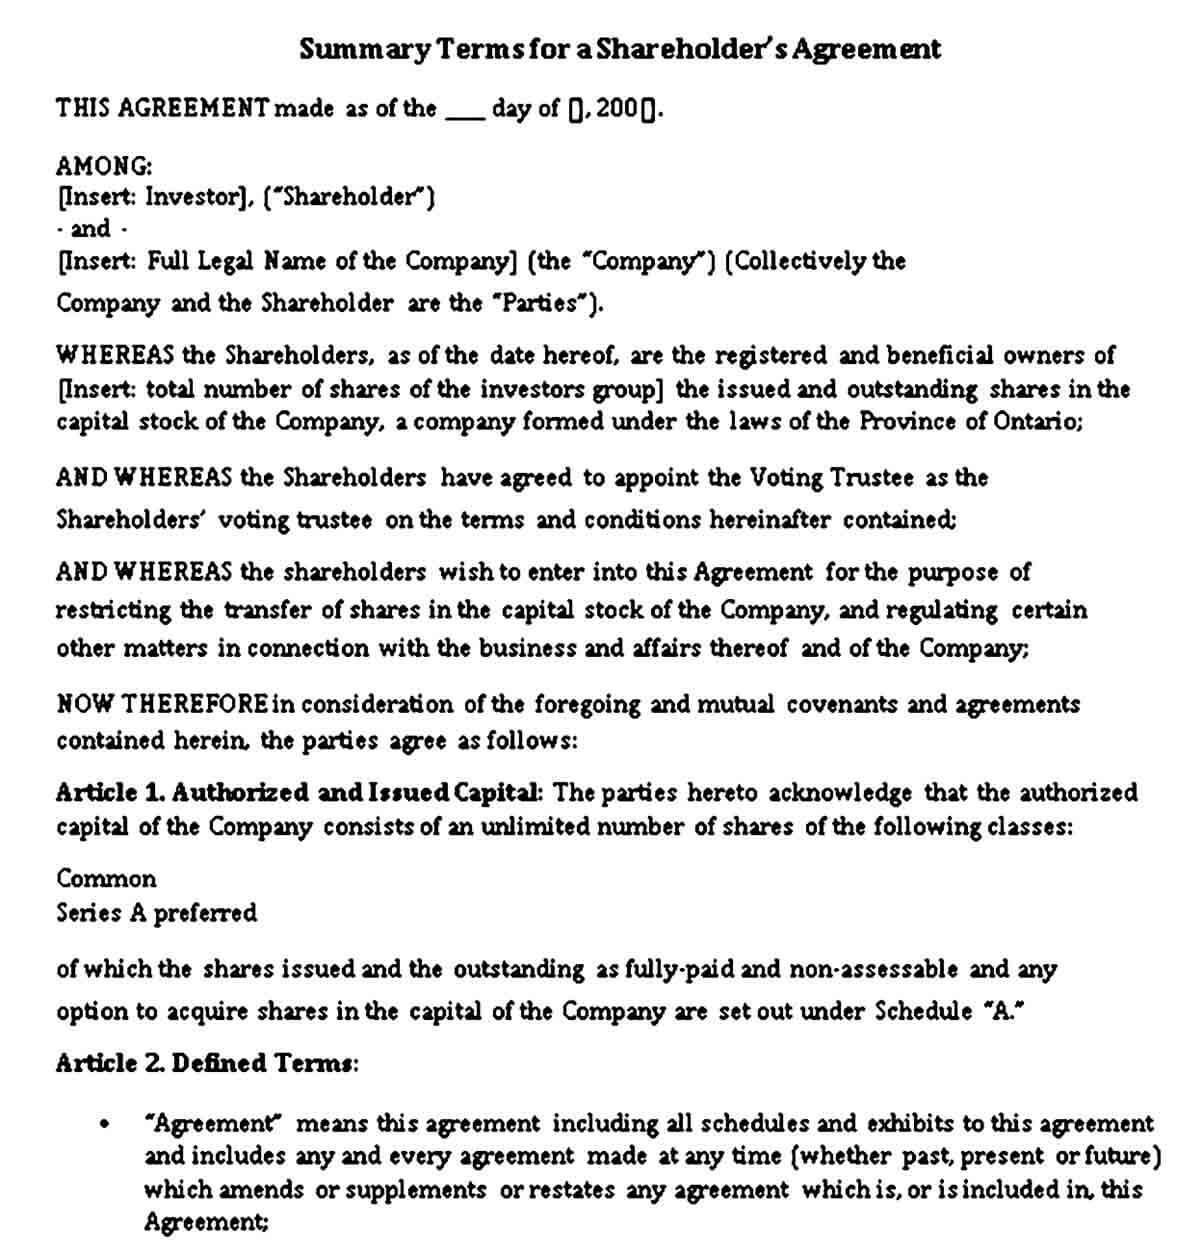 Summary Terms for Shareholders Agreement Template